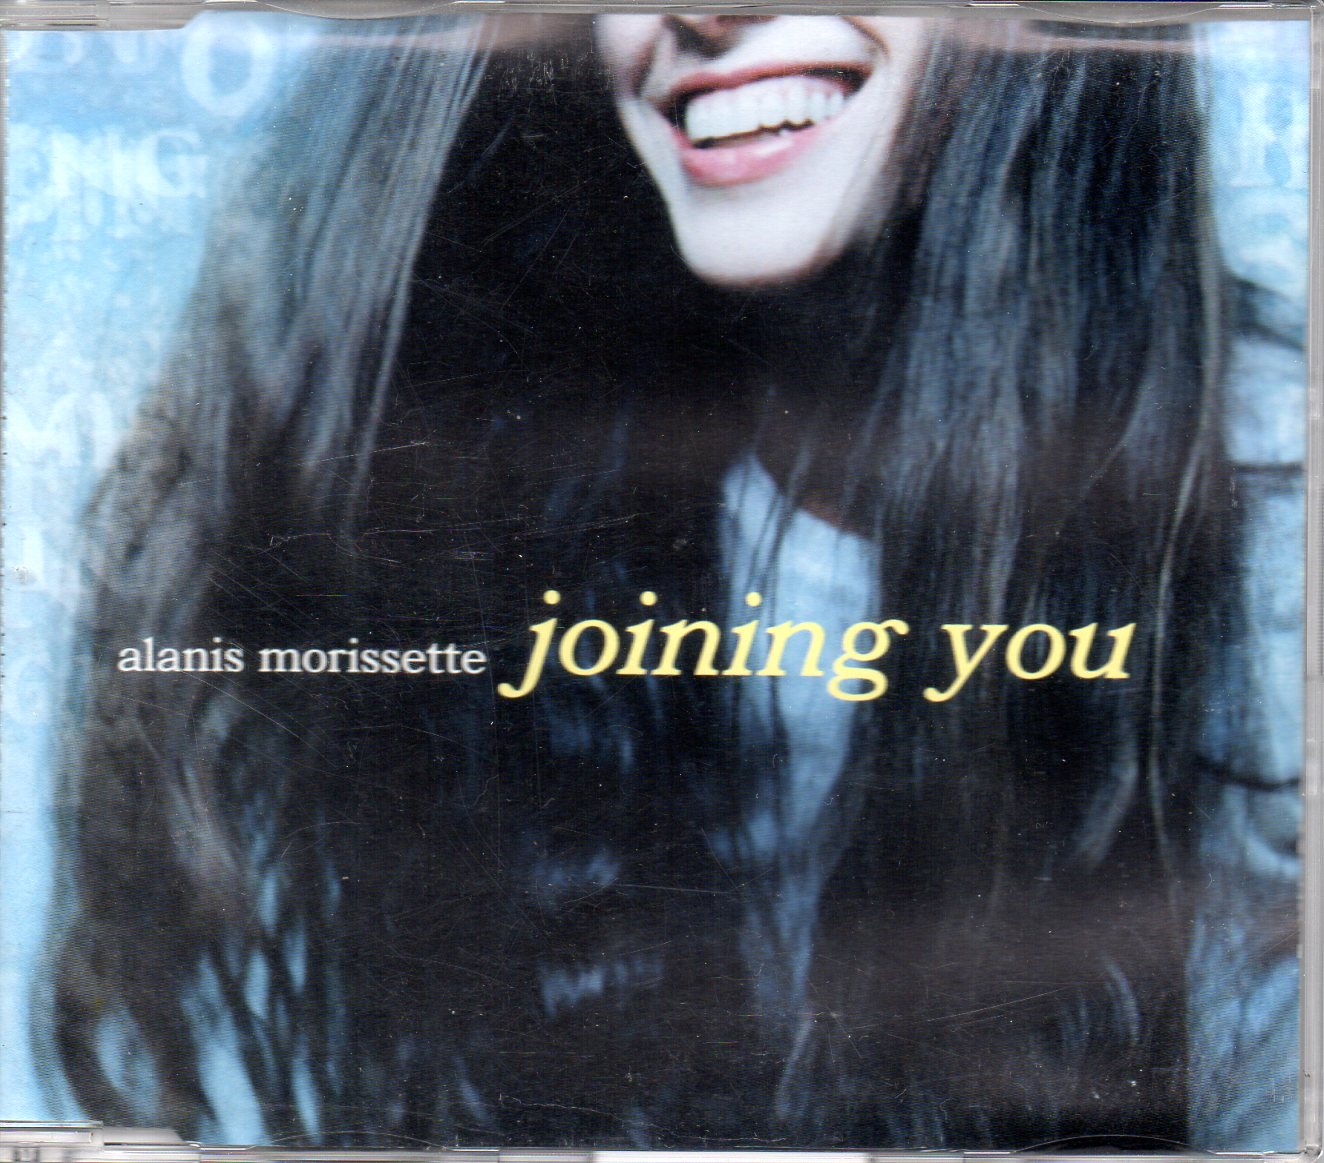 ALANIS MORISSETTE - Joining you Promo 2-track jewel case - CD Maxi